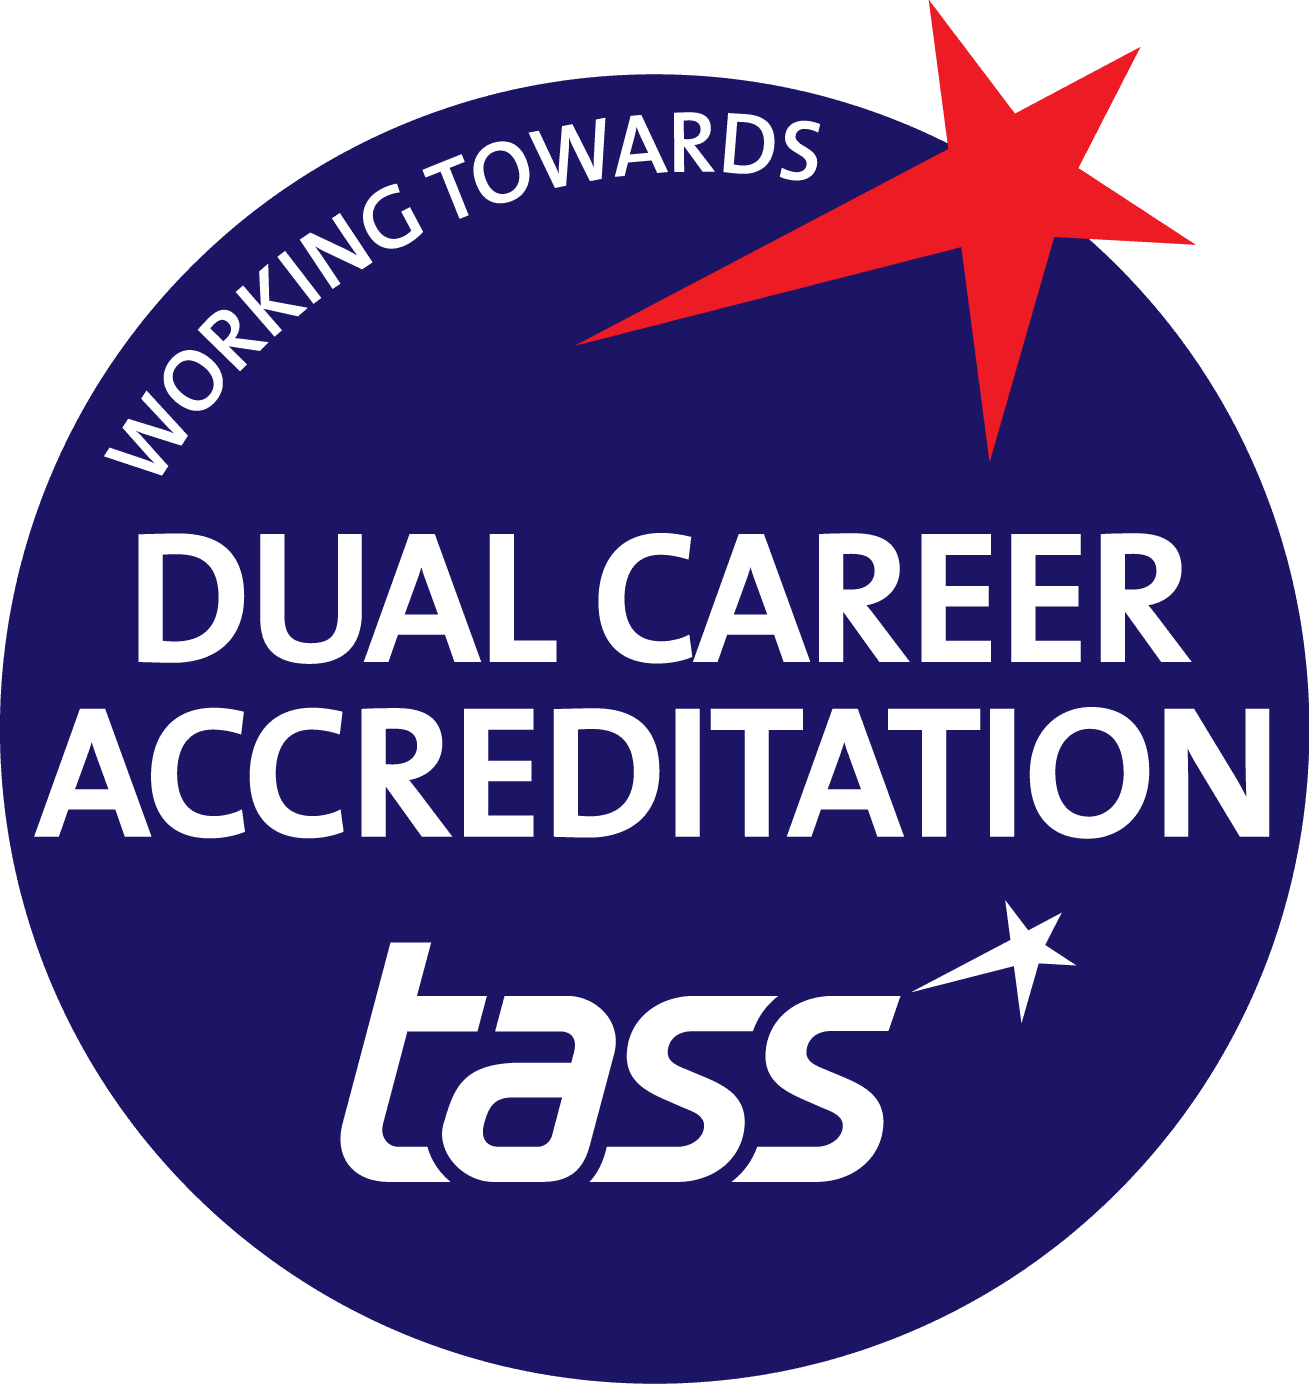 tass Dual Career Accreditation